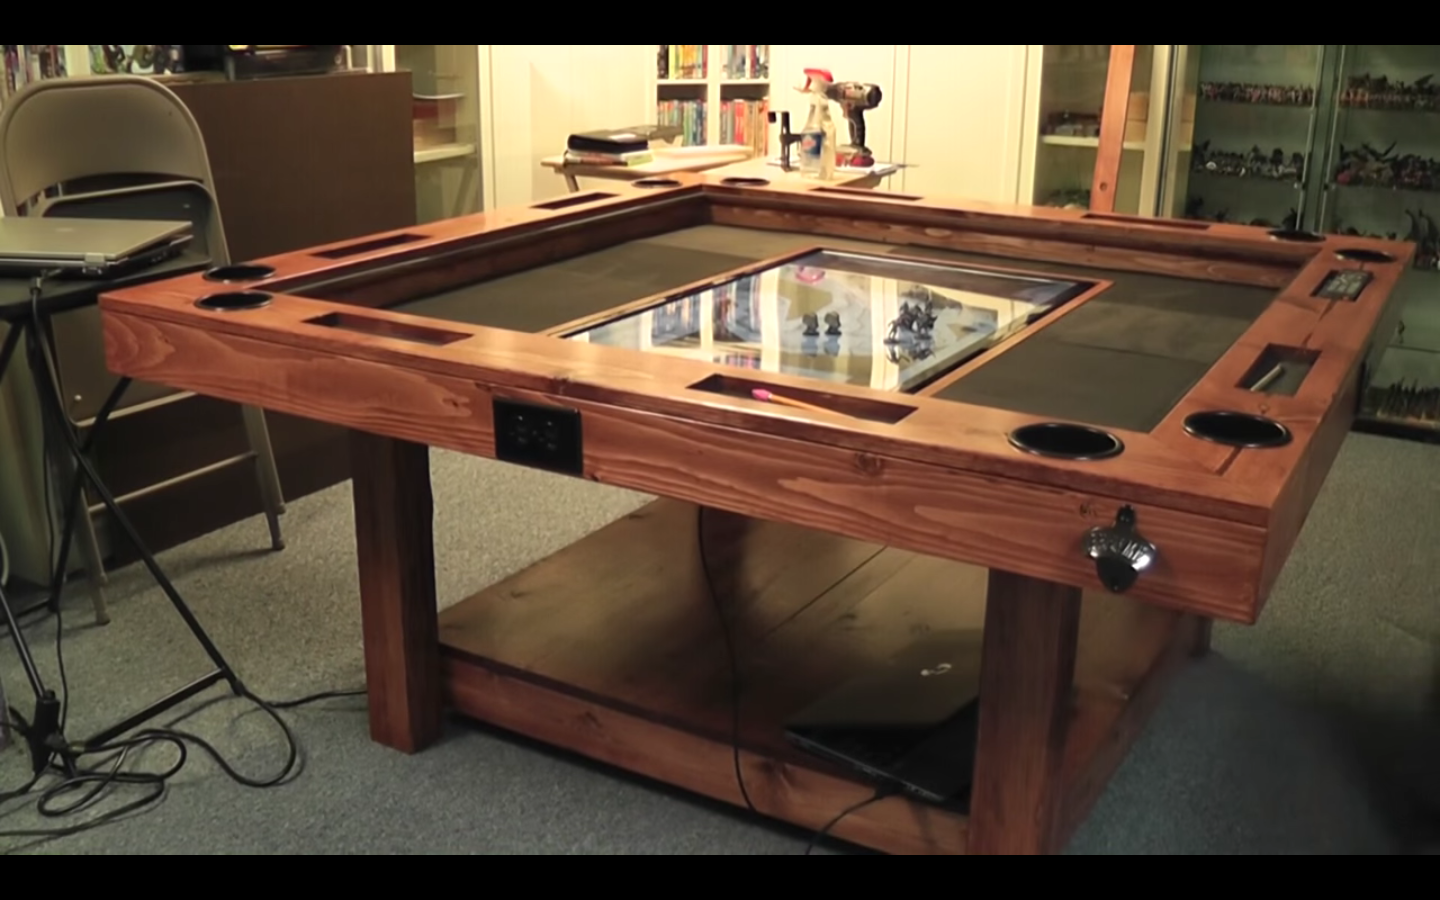 Building the Ultimate Gaming Table : Singapore Open Gaming